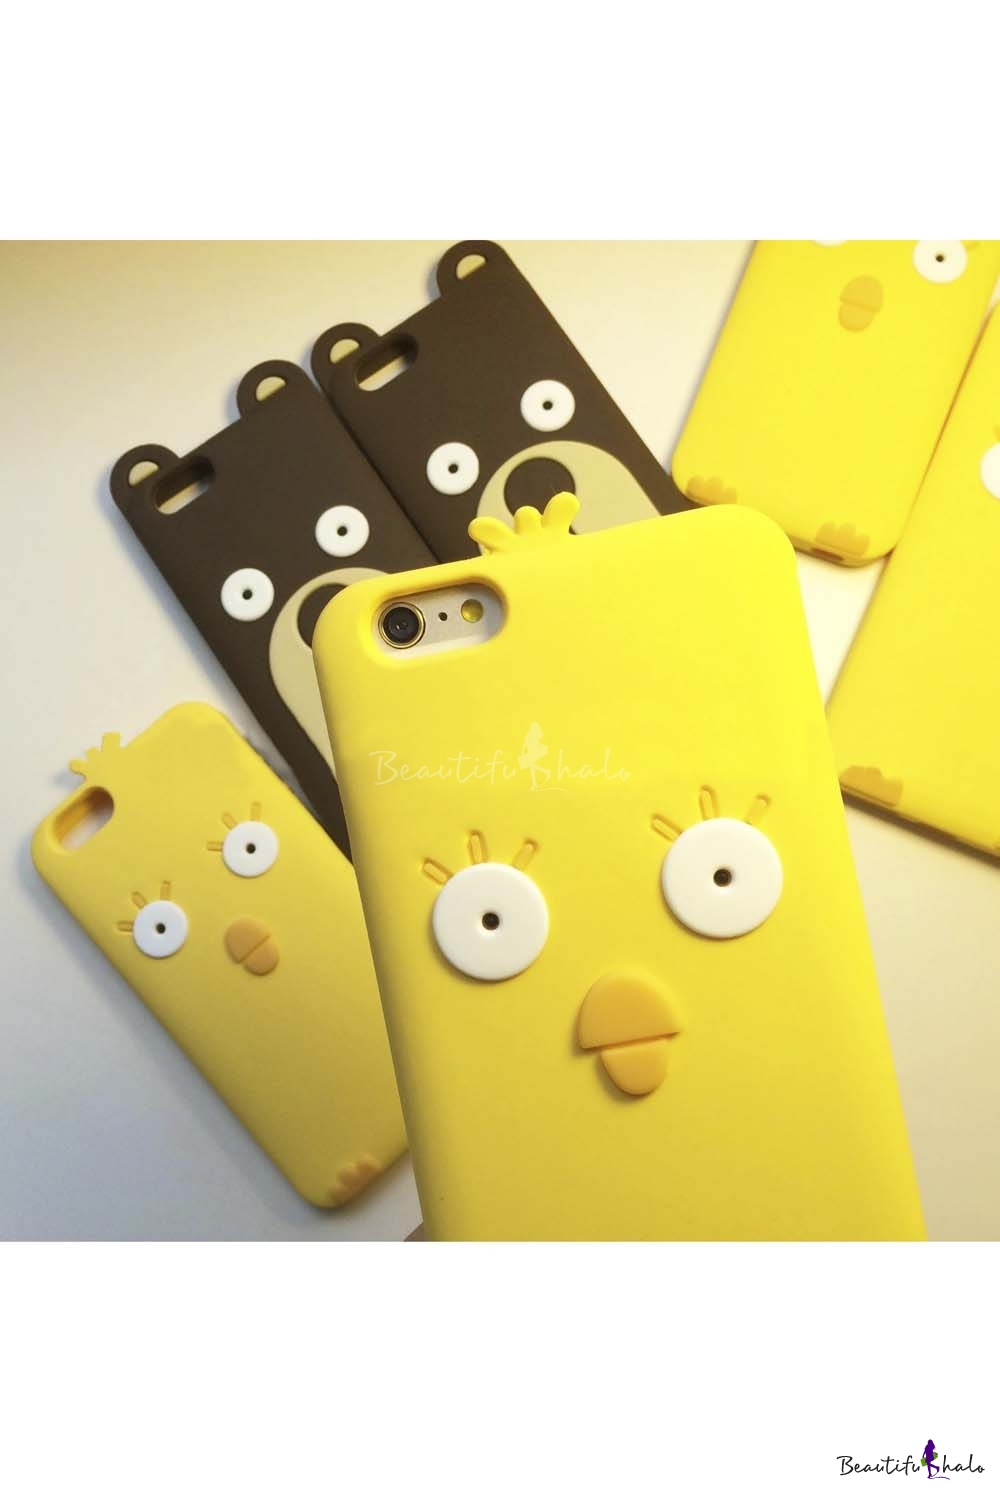 Buy Fashion Cute Cartoon Chicken Bear Soft Silicone Case Cover iPhone 5/5S 6 Plus